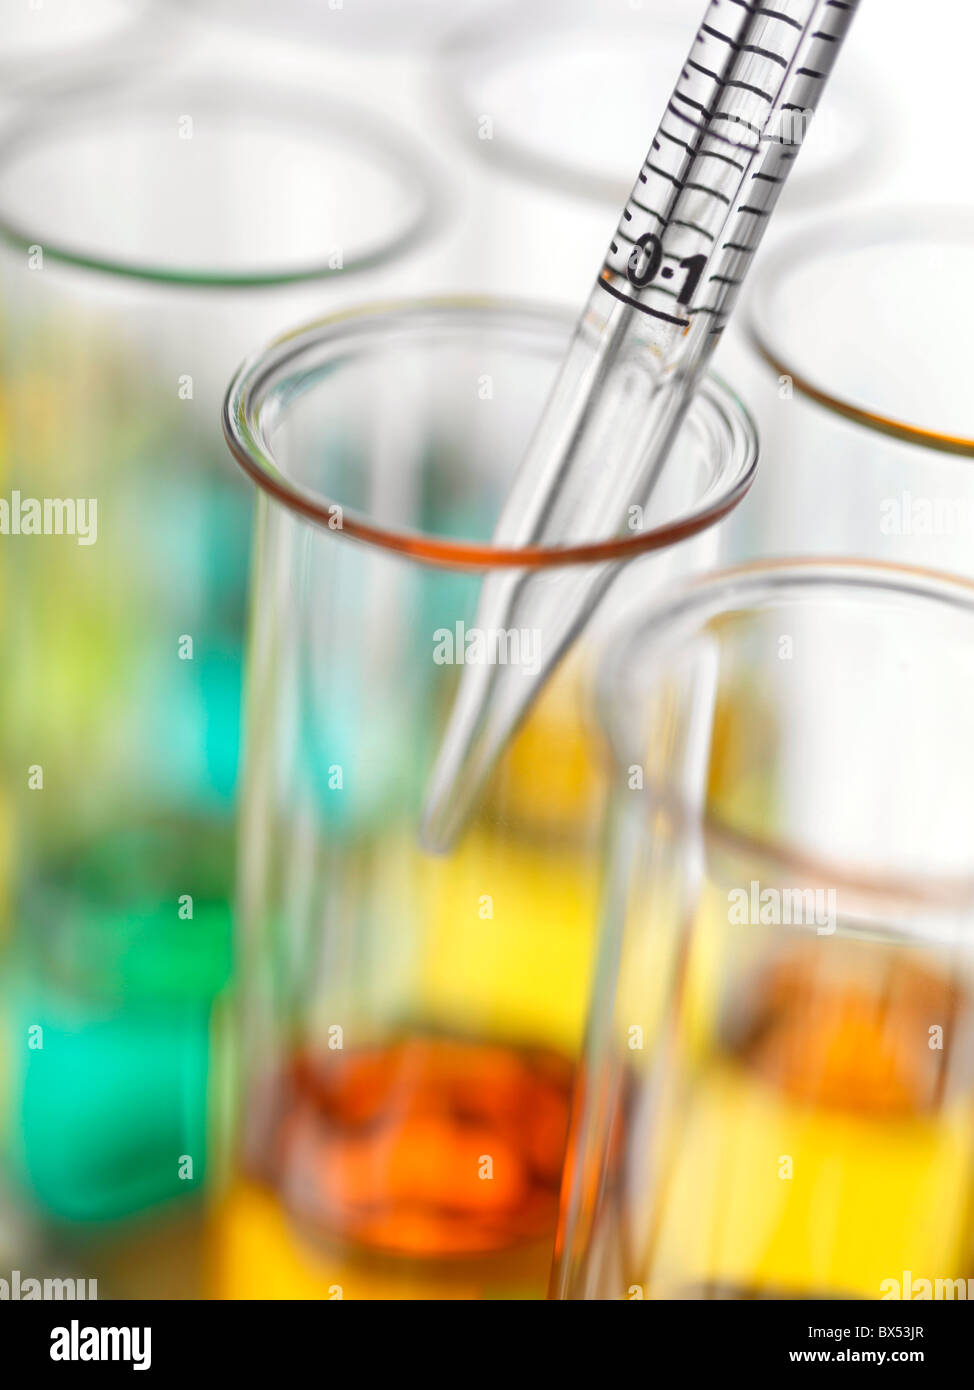 Pipetting - Stock Image